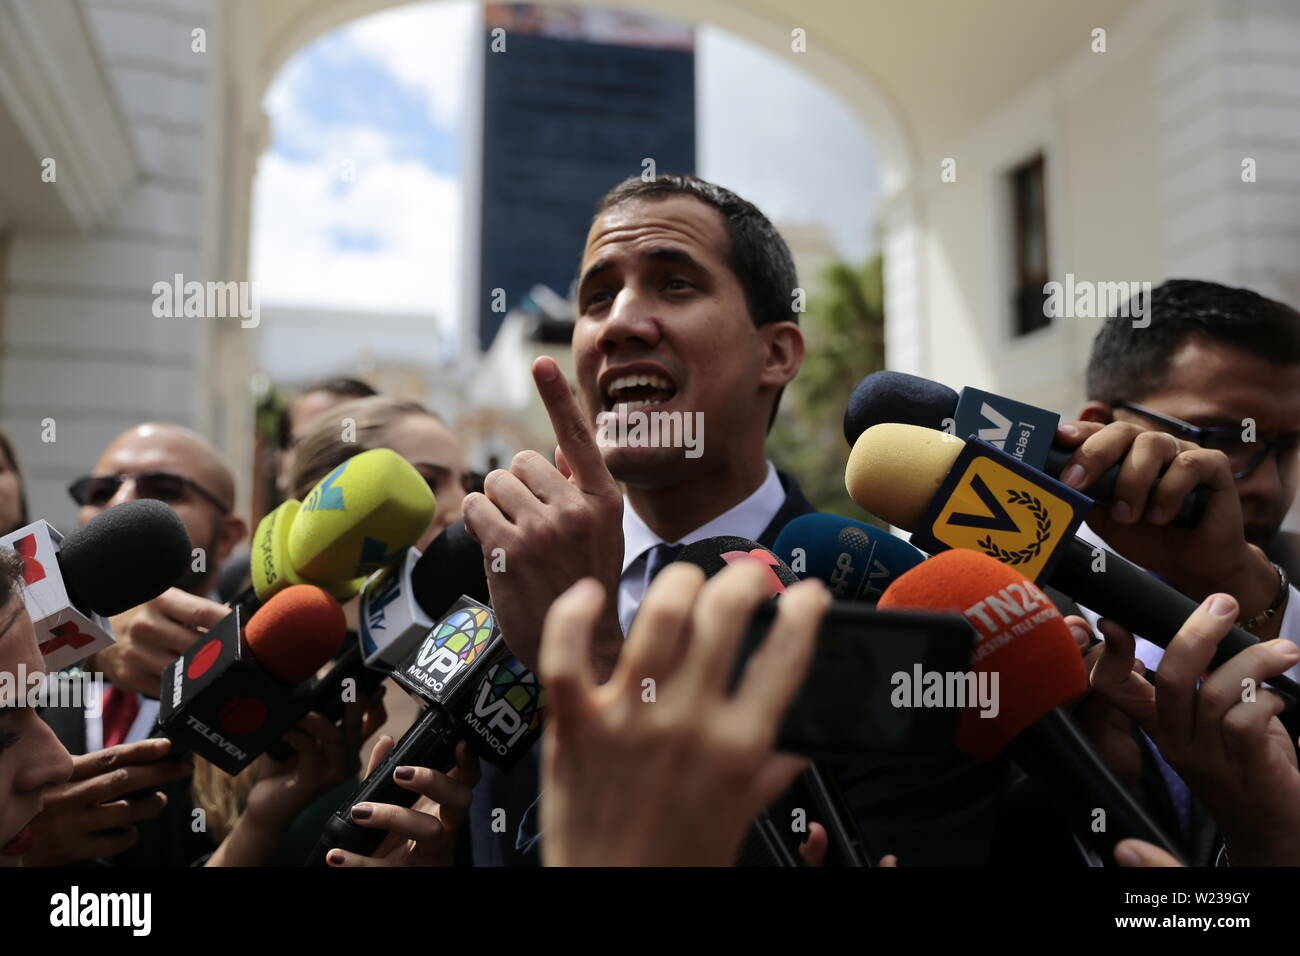 Caracas, Venezuela. 05th July, 2019. Juan Guaido, self-proclaimed interim president of Venezuela, talks to journalists when he comes to an Independence Day event in the National Assembly. Guaido has called on civil society to protest against the government of Head of State Maduro. Venezuela commemorates on July 5 the independence of Spain in 1811. Credit: Rafael Hernandez/dpa/Alamy Live News - Stock Image